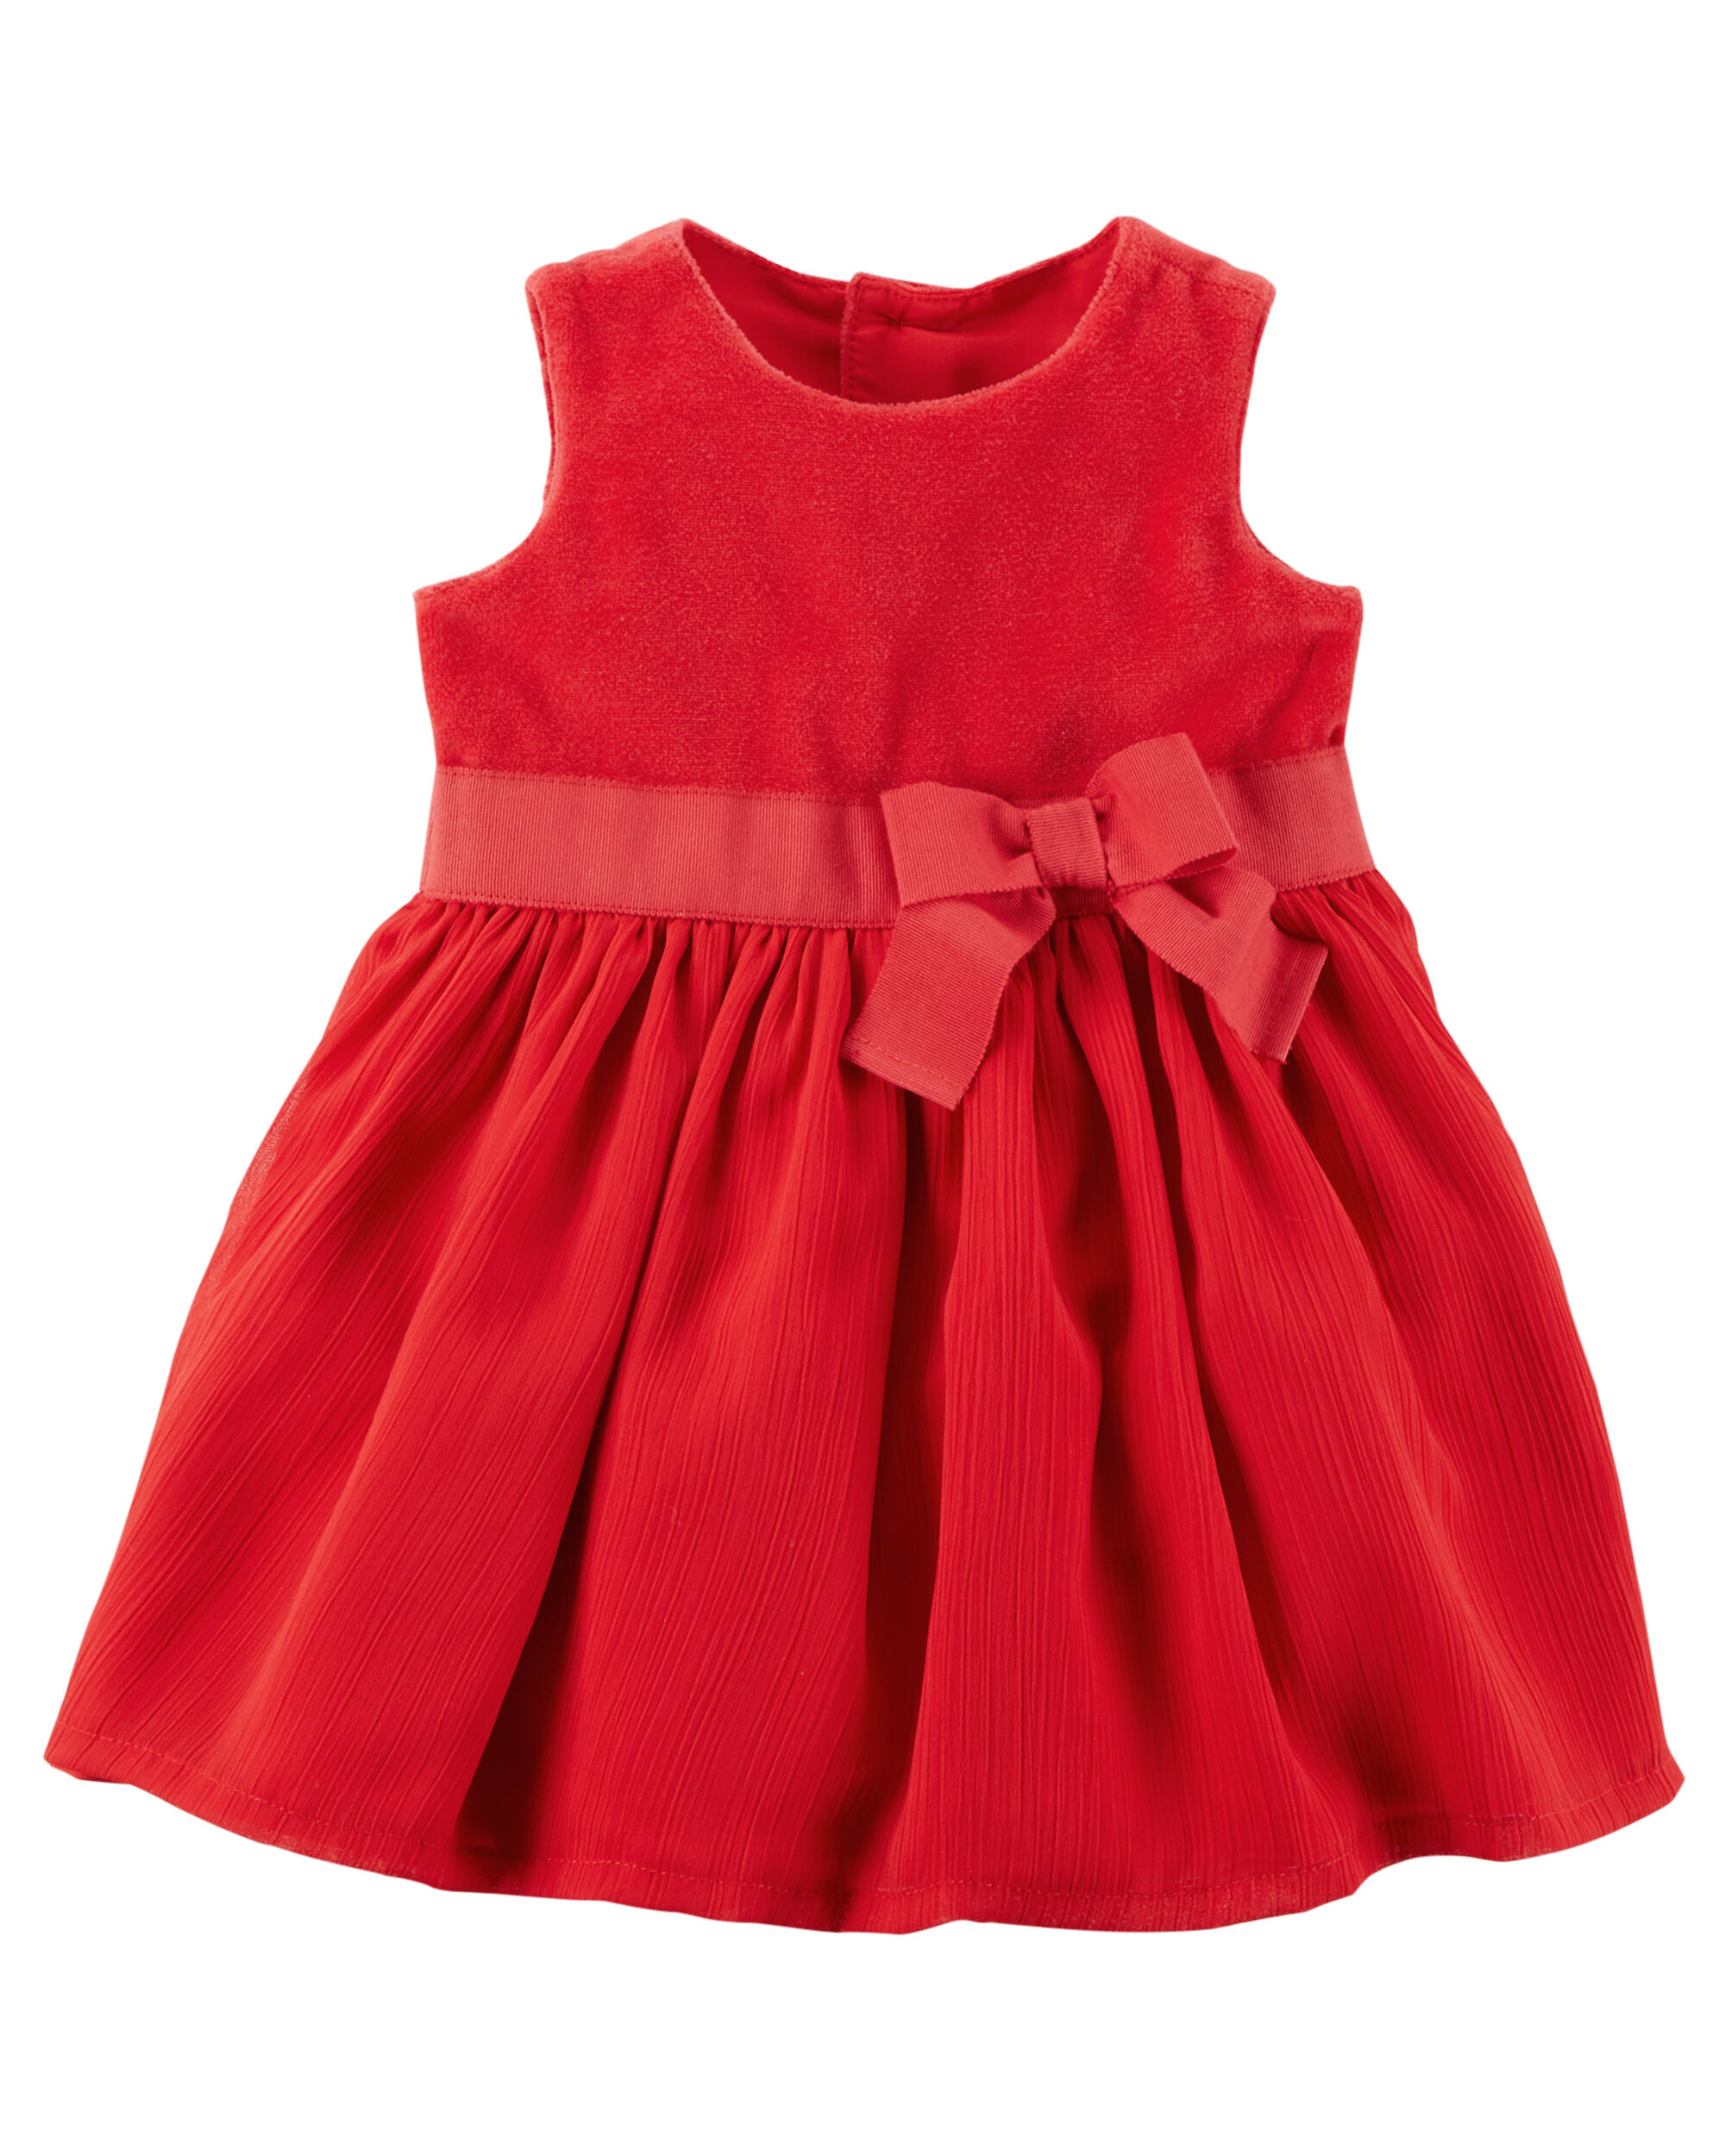 Baby Girl Christmas Dresses & Outfits | Free Shipping | Carter's